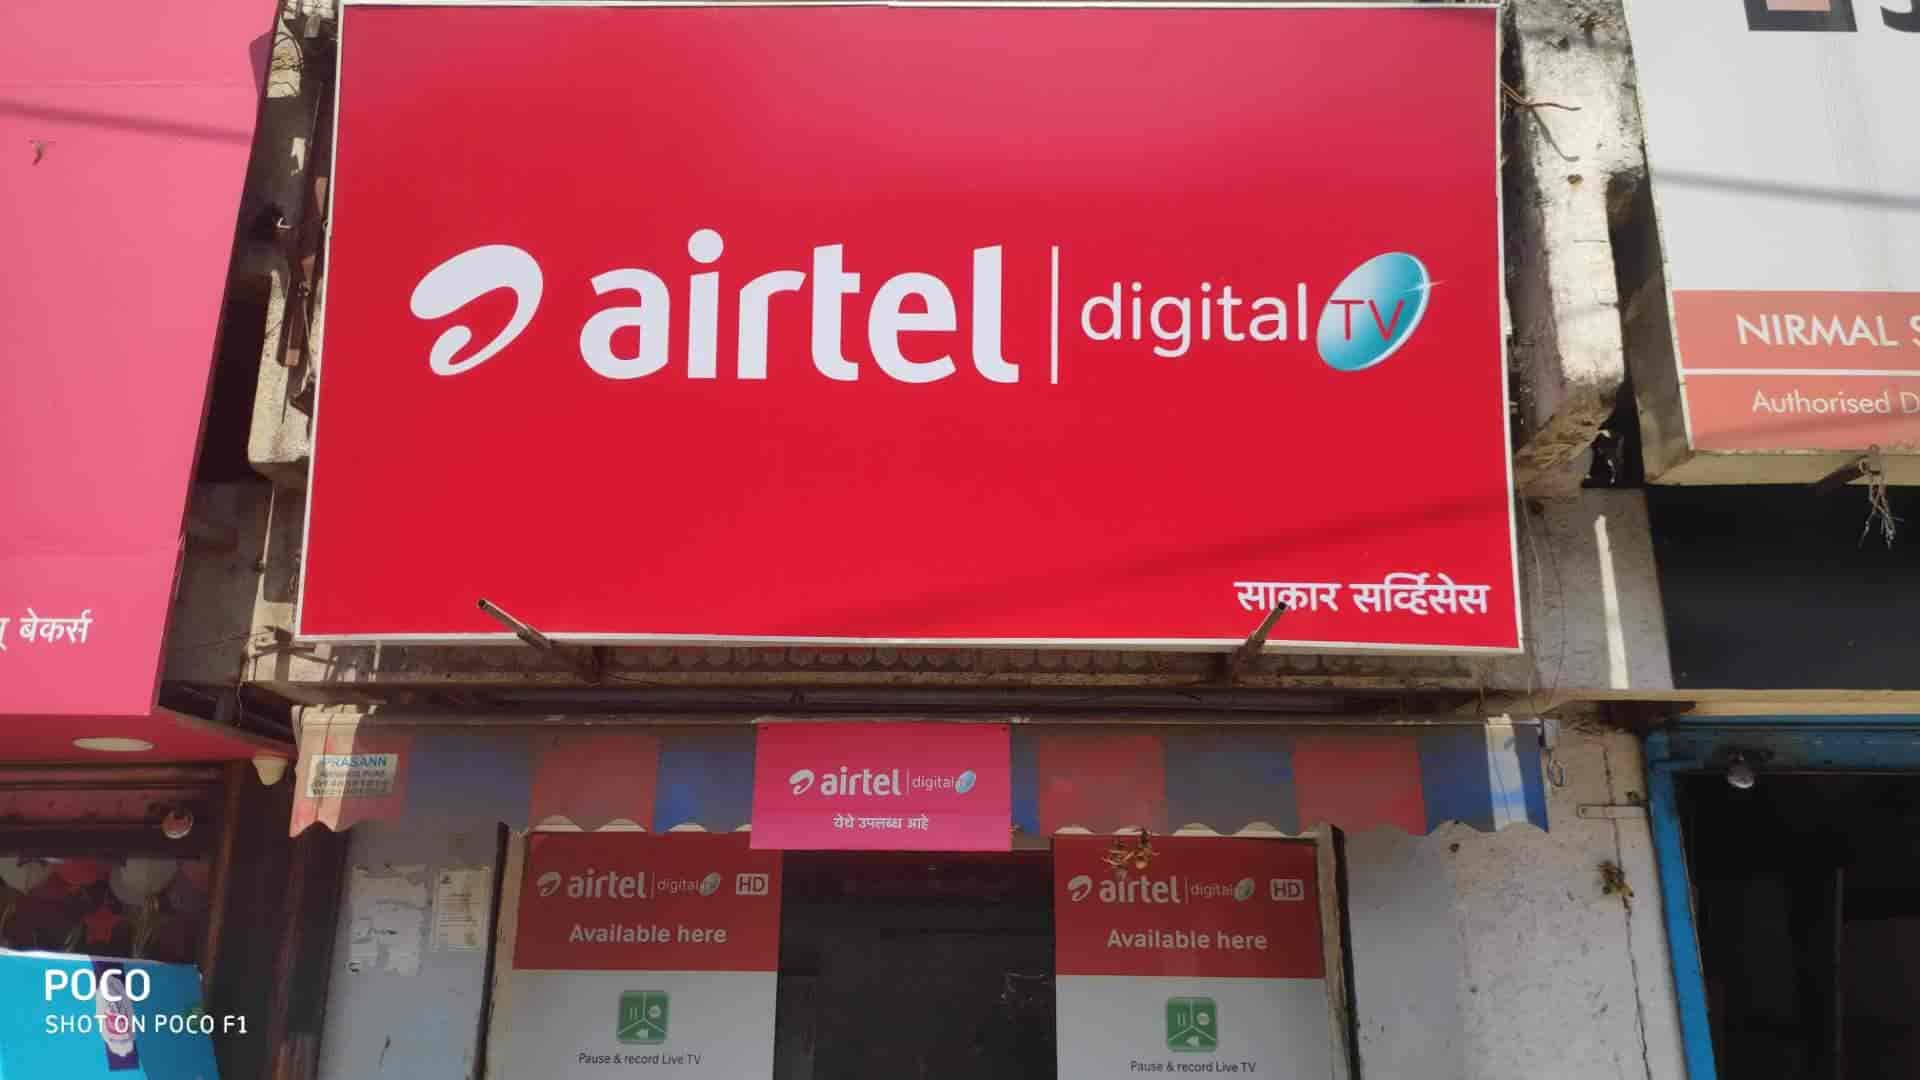 airtel digital tv recharge coupon offers